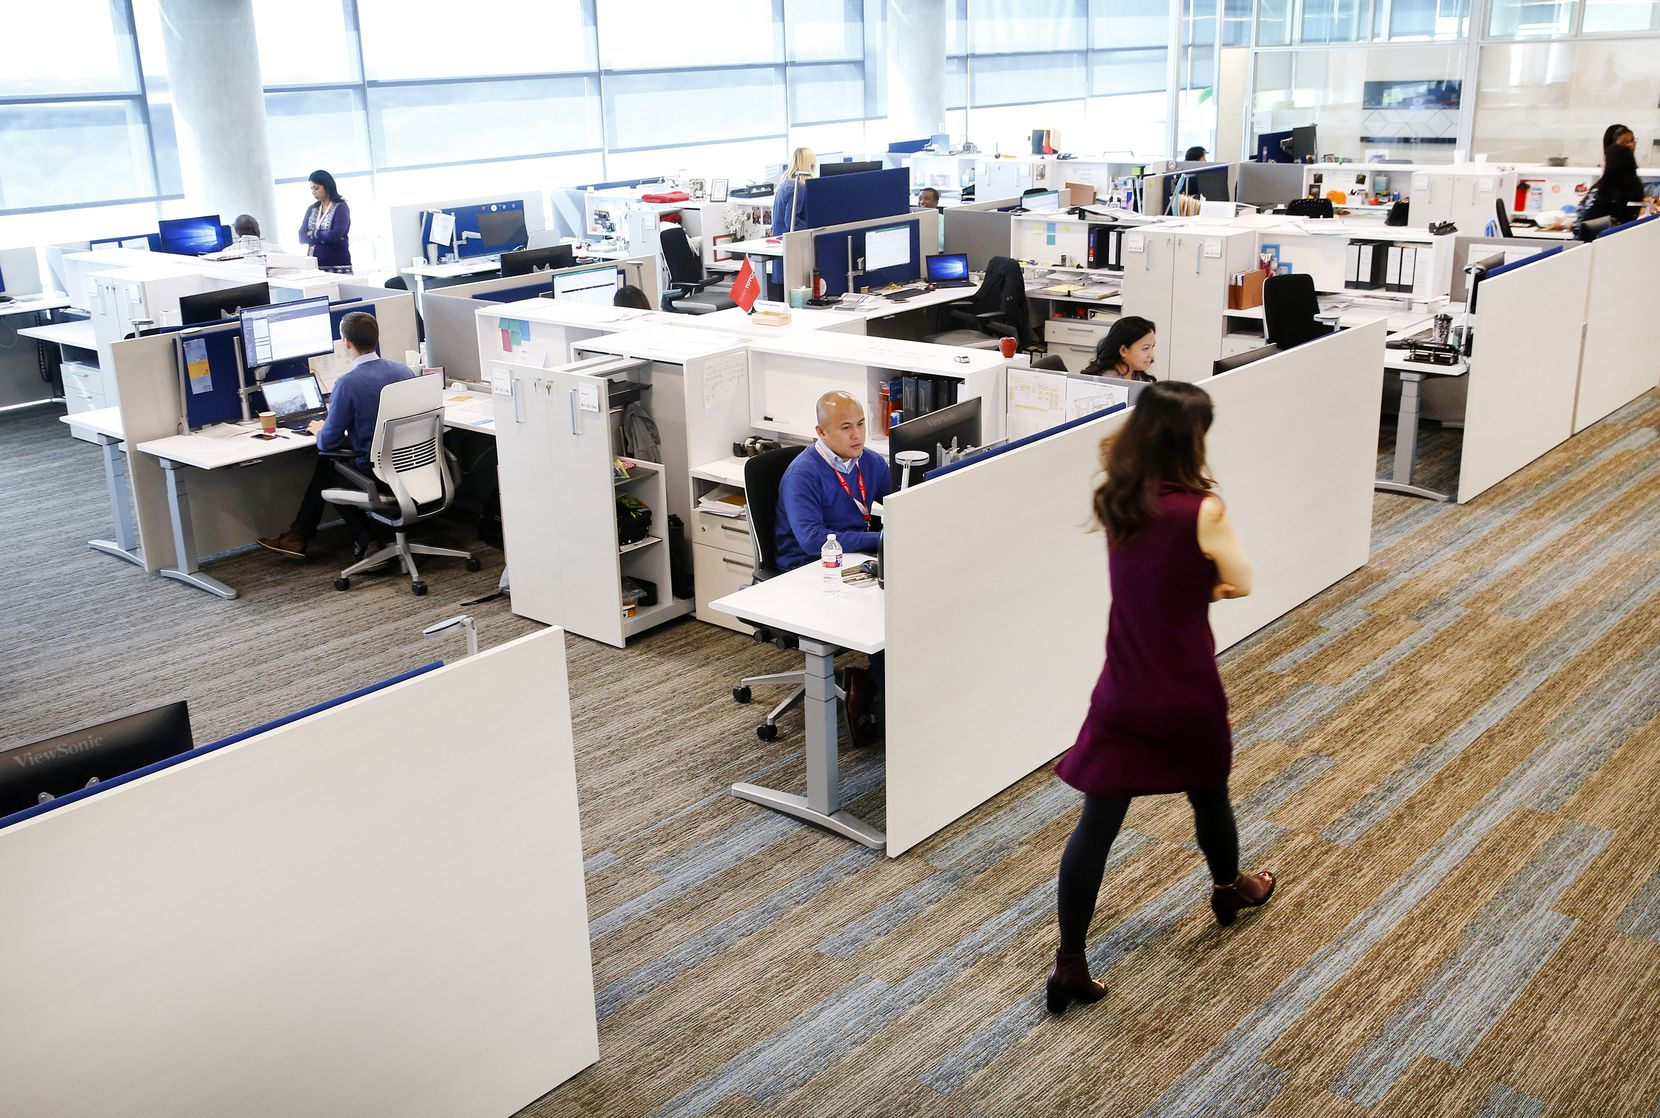 Spacious and open office spaces in Toyota's new North American headquarters campus in Plano.